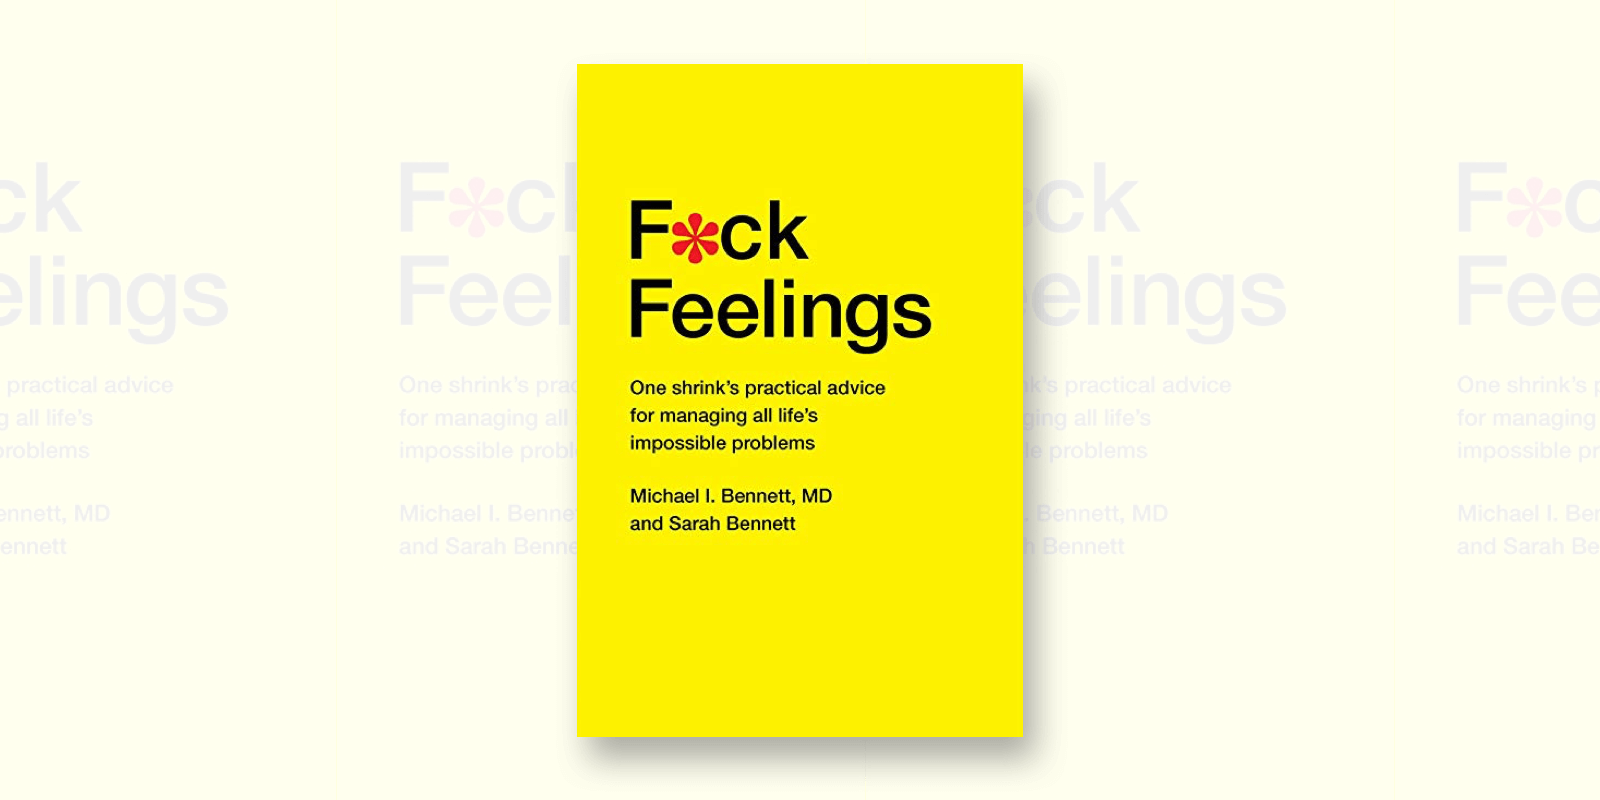 Fuck Feelings Summary